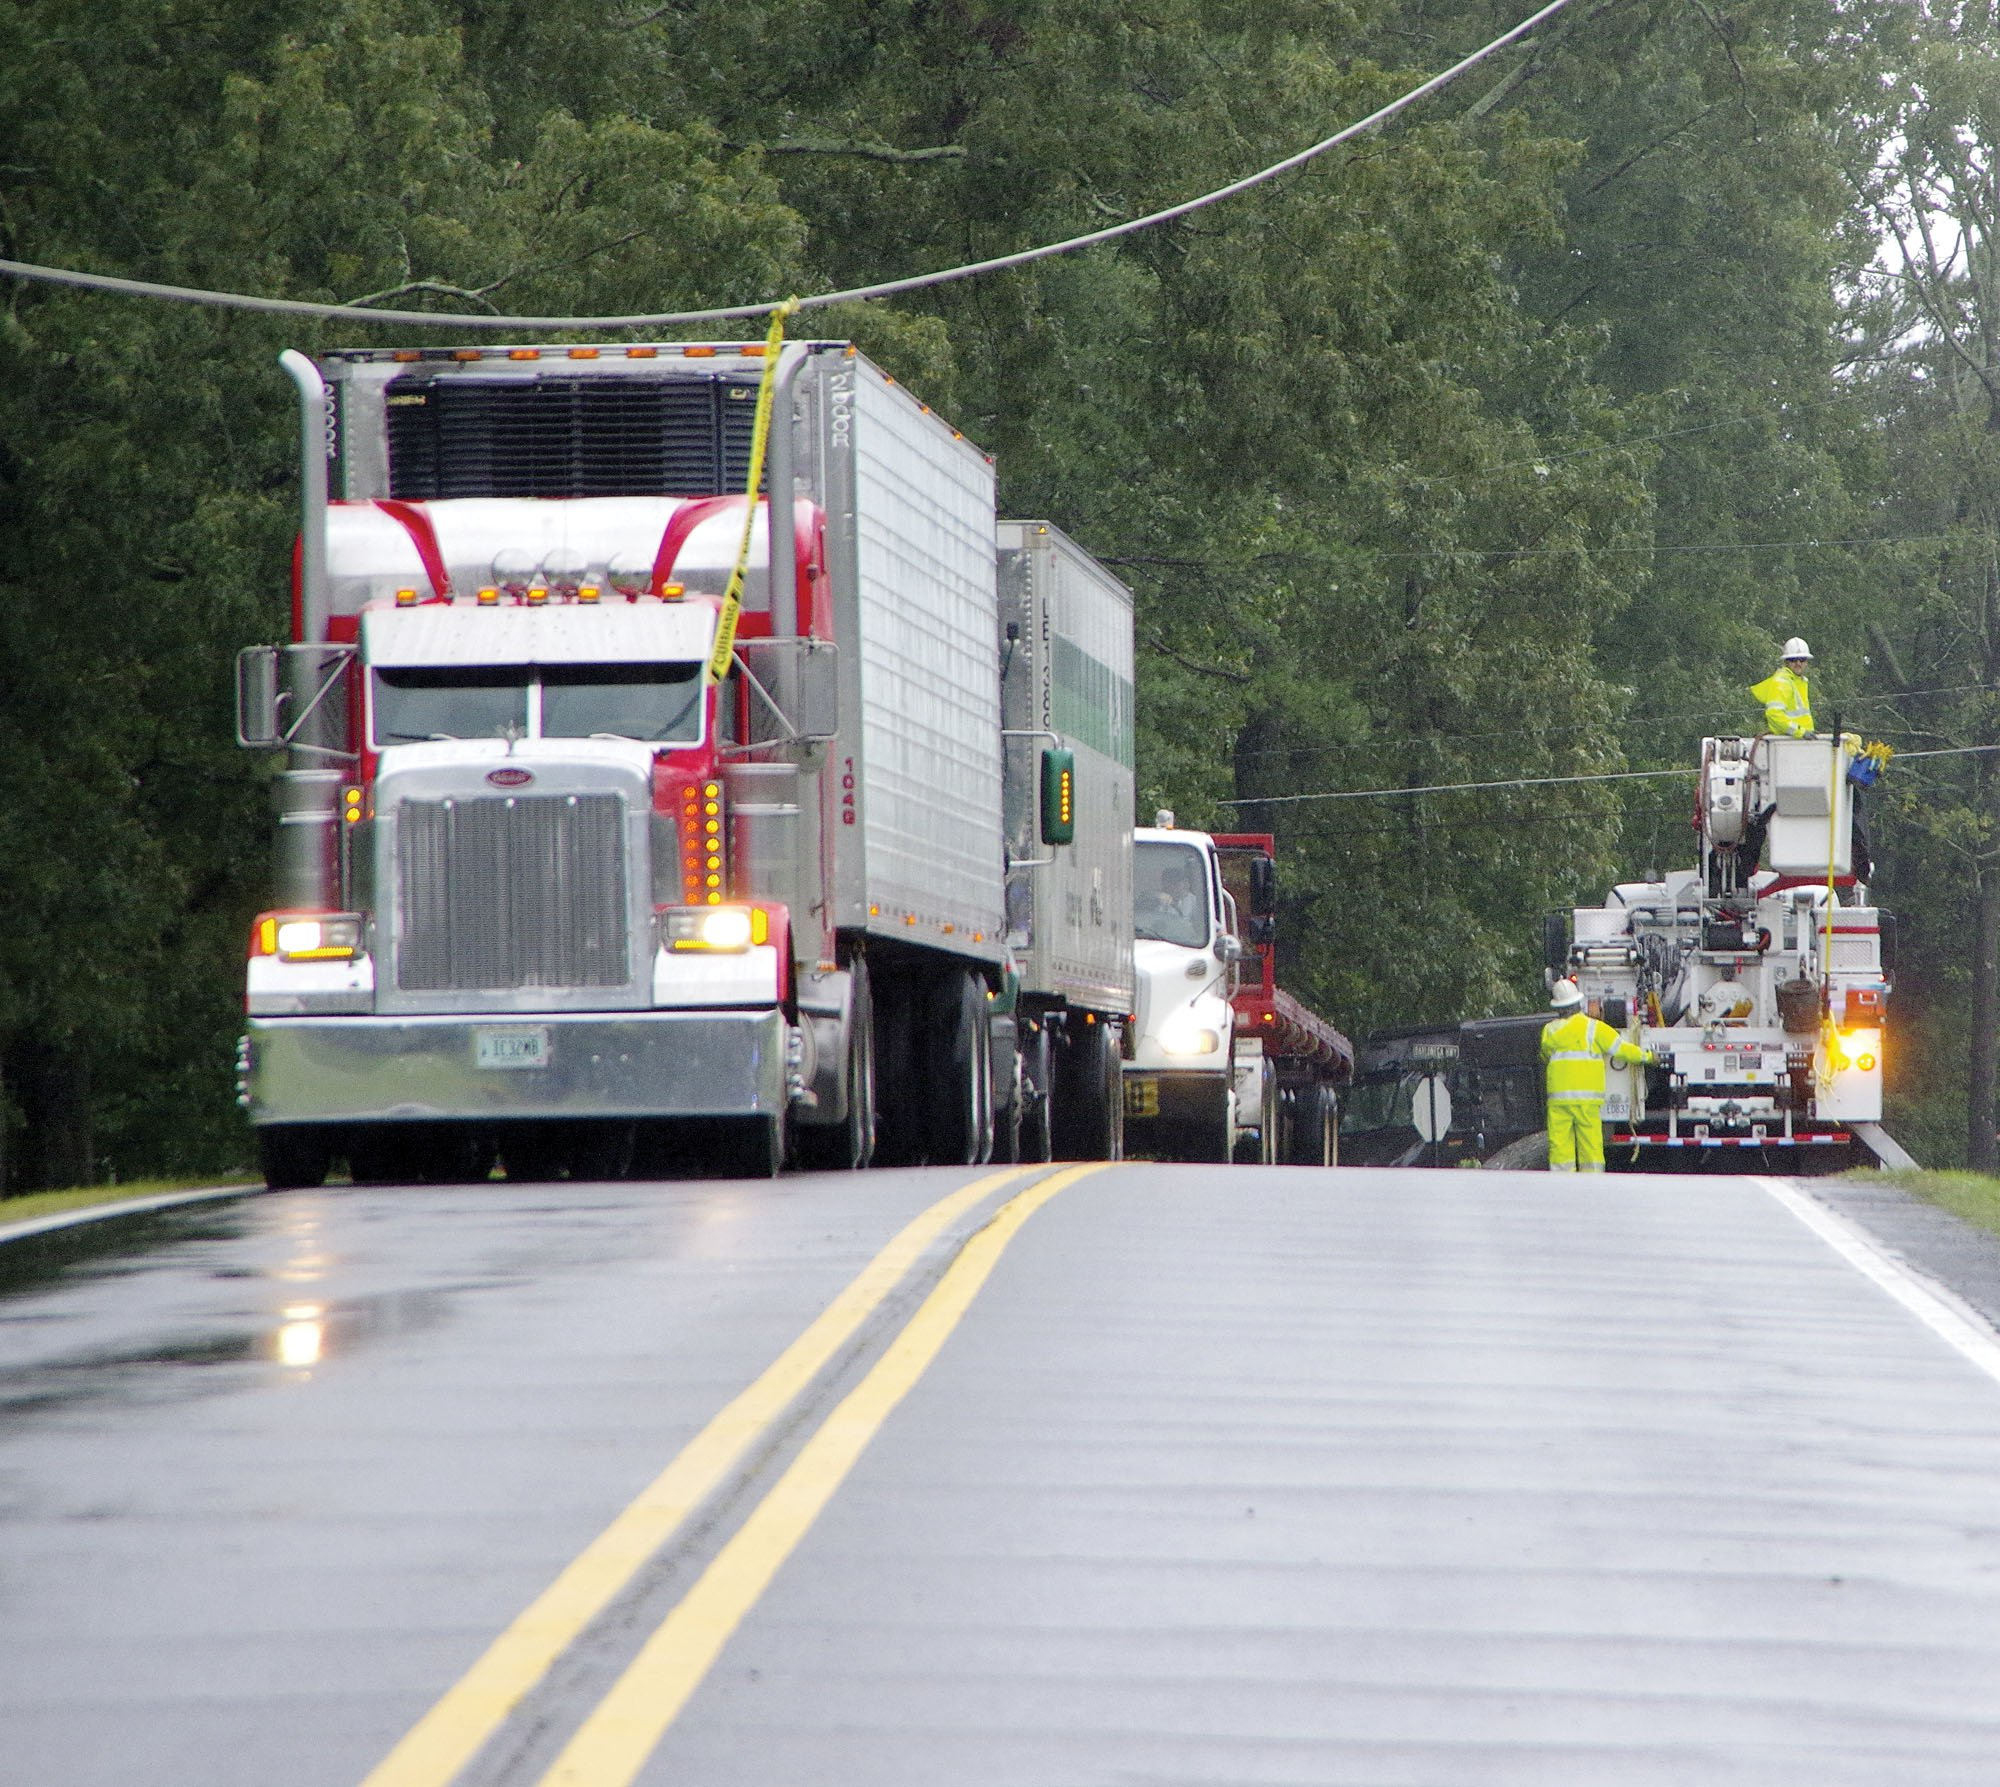 Dahlonega Highway was blocked on Tuesday